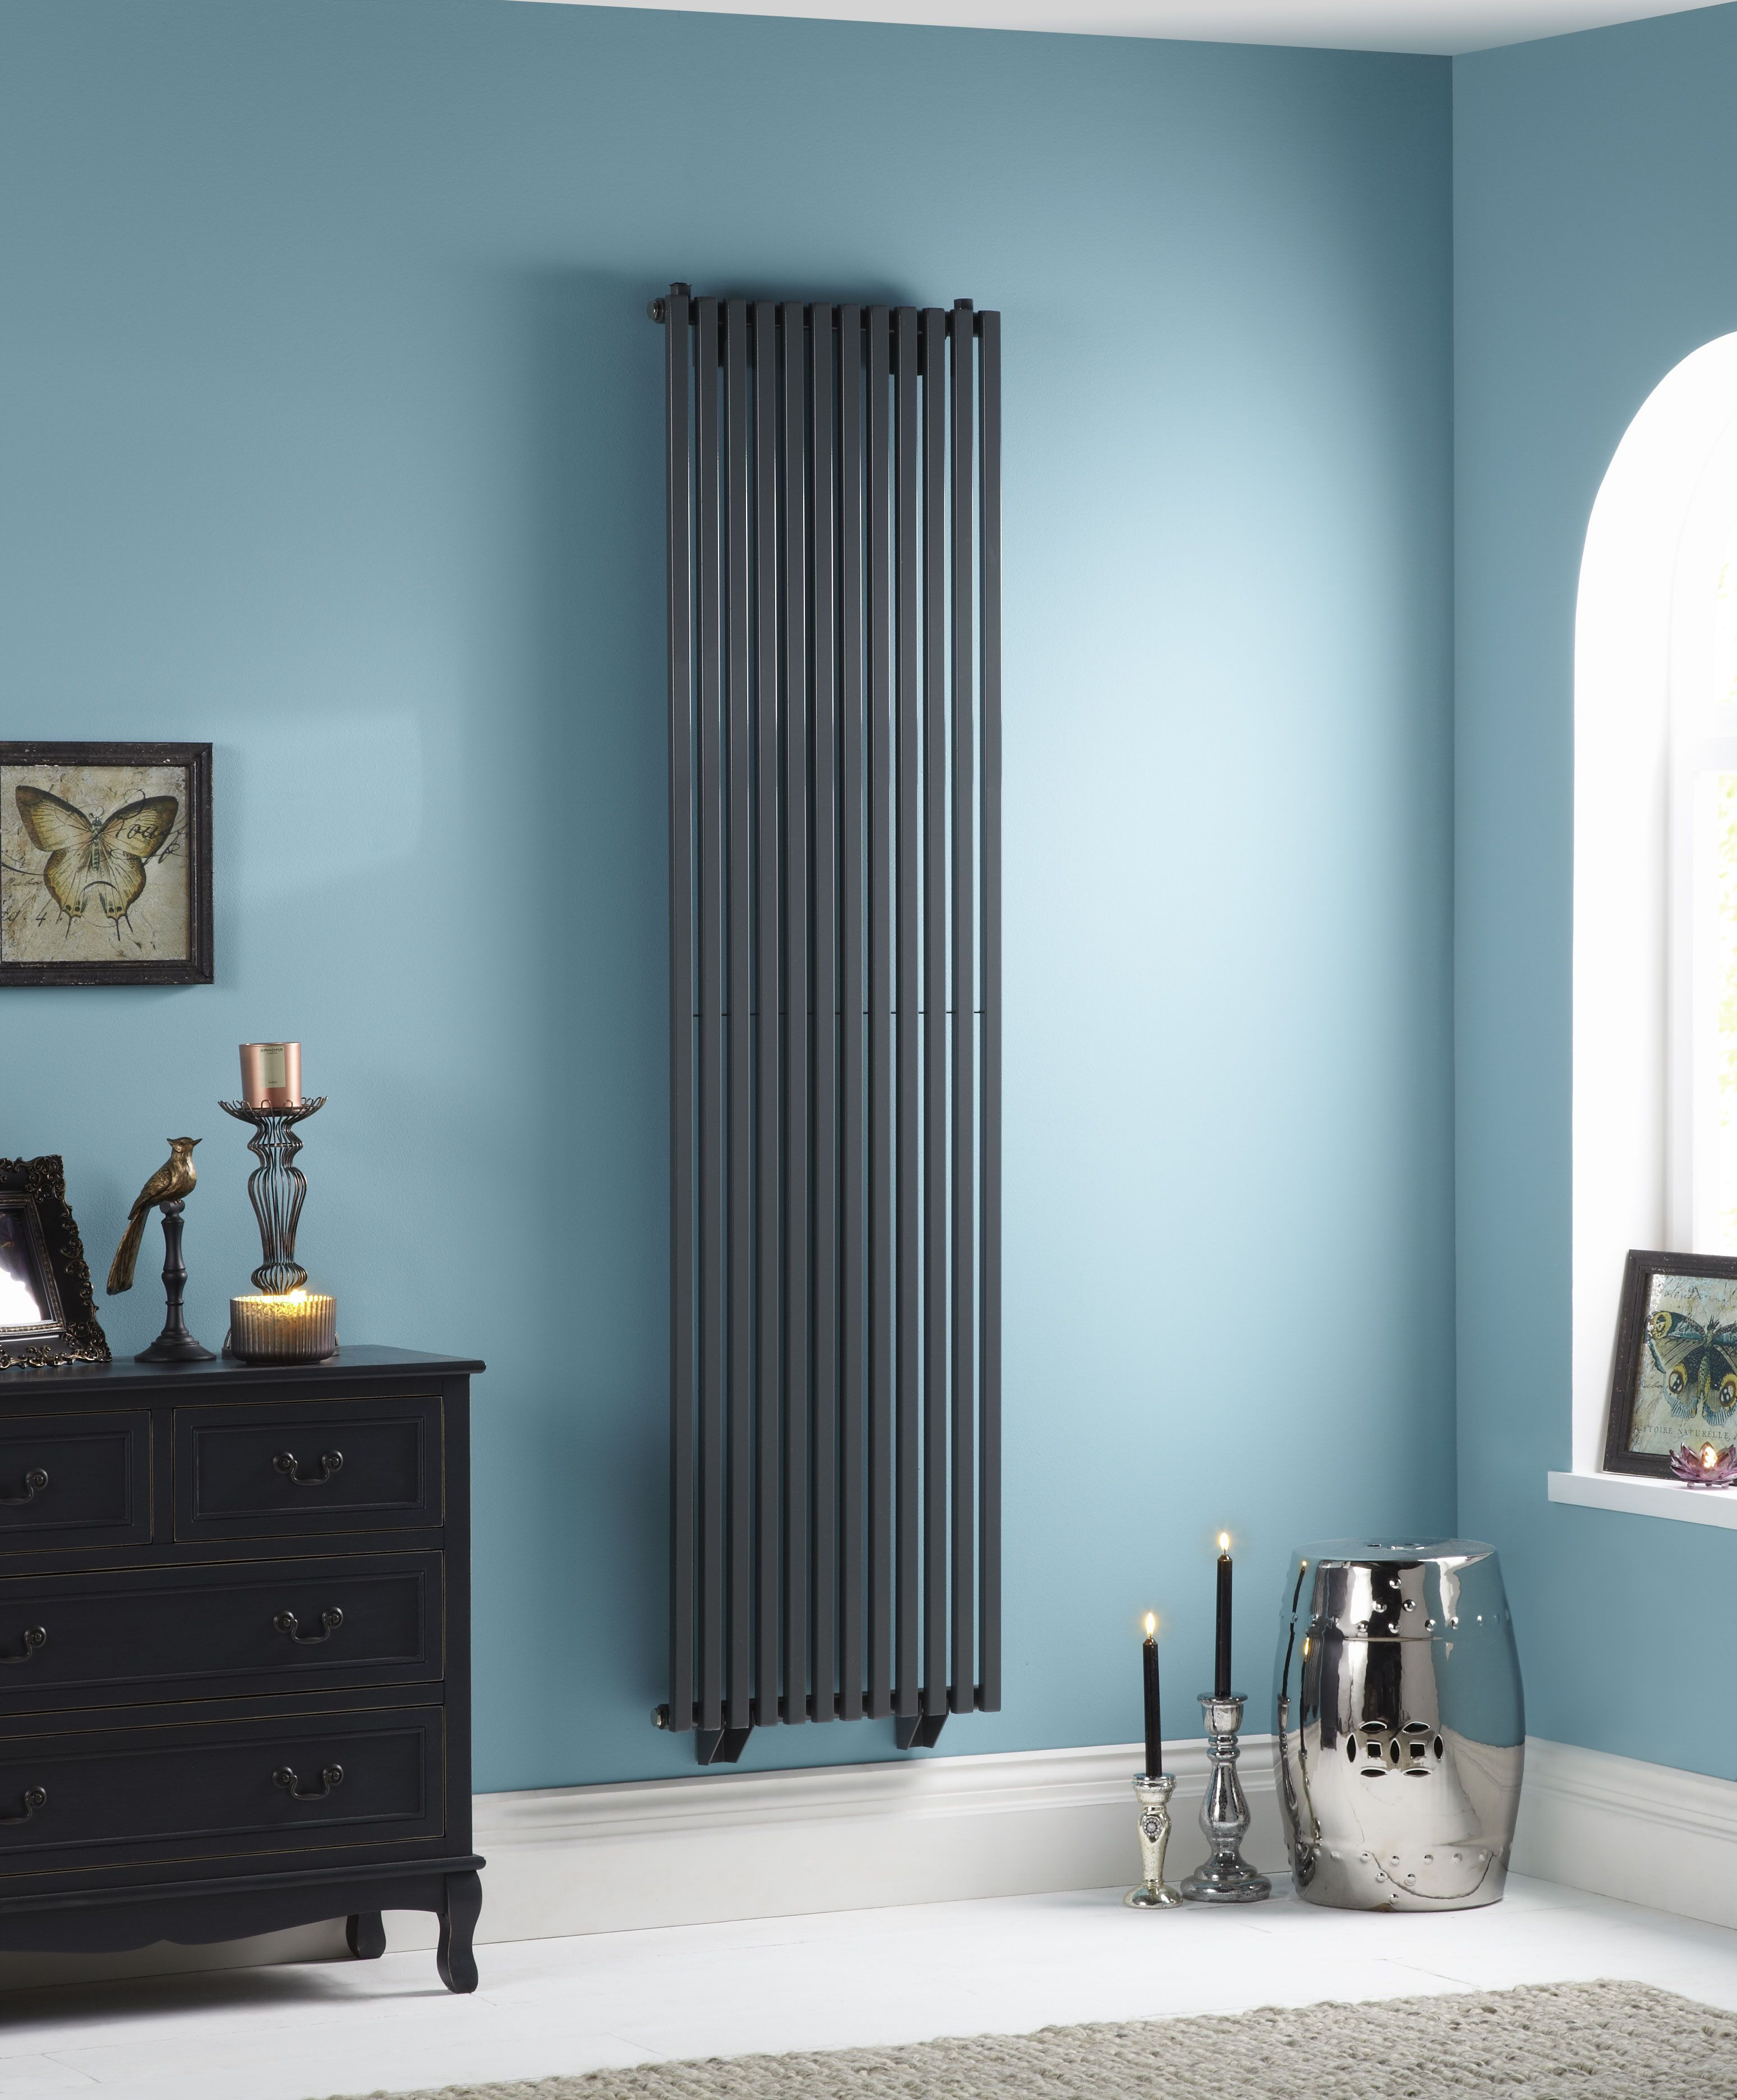 The Towelrads Oxfordshire Vertical radiator has a vertical \'D ...